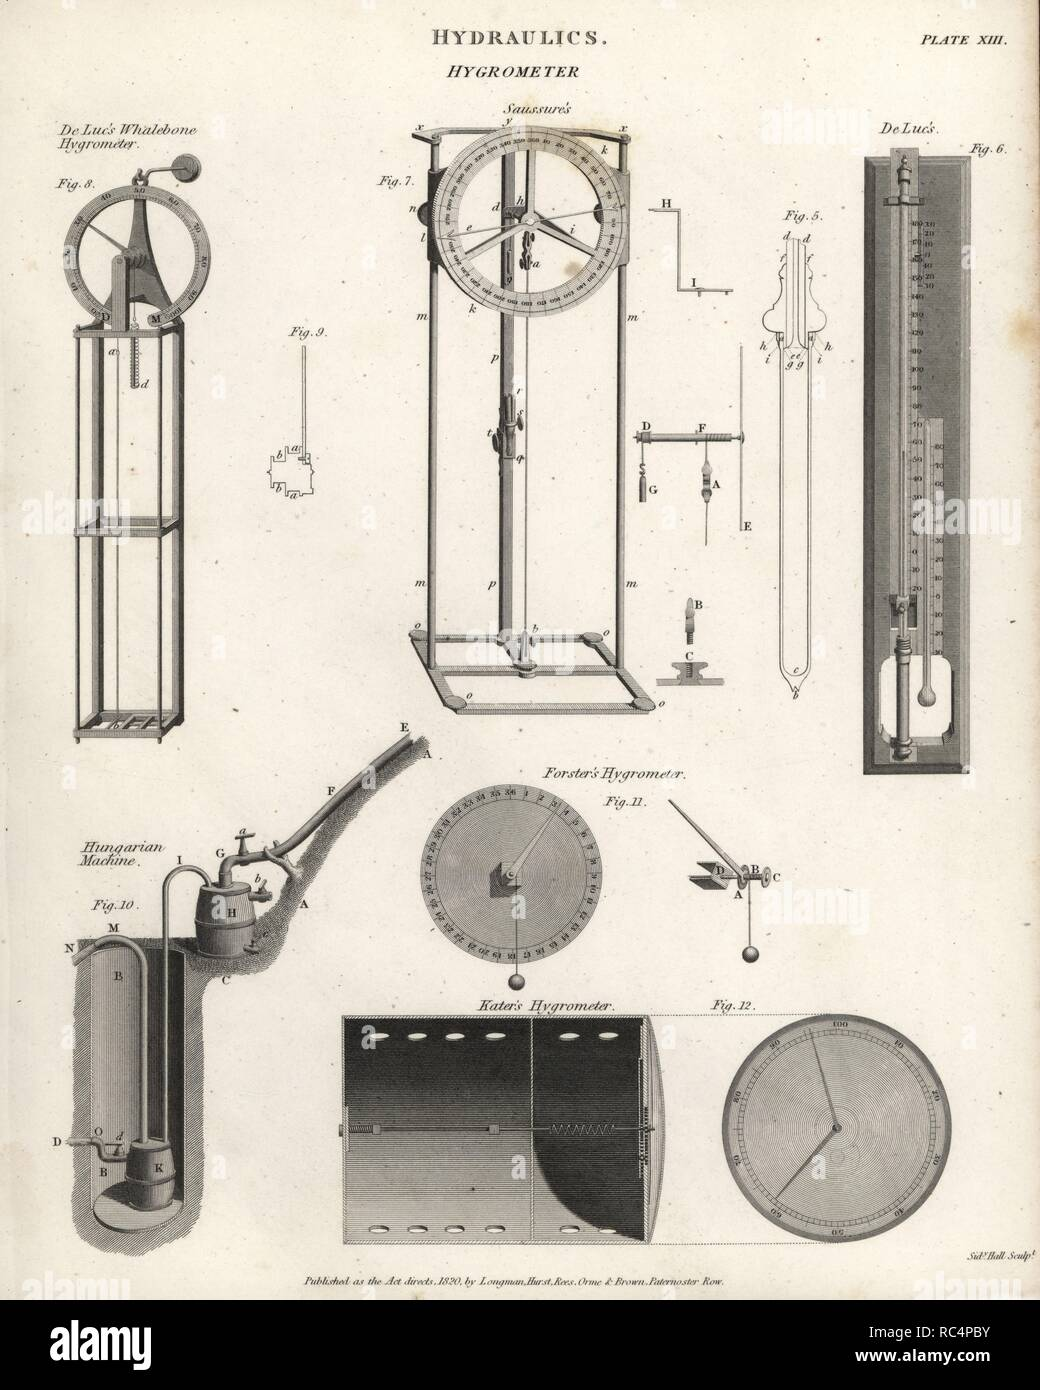 Types of hygrometers, 18th century, to measure moisture content. Jean-Andre De Luc's whalebone hygrometer, and others by Horace-Benedict de Saussure, Benjamin Meggot Forster, Henry Kater and the Hungarian Machine. Copperplate engraving by Sidney Hall from Abraham Rees' Cyclopedia or Universal Dictionary of Arts, Sciences and Literature, Longman, Hurst, Rees, Orme and Brown, London, 1820. - Stock Image